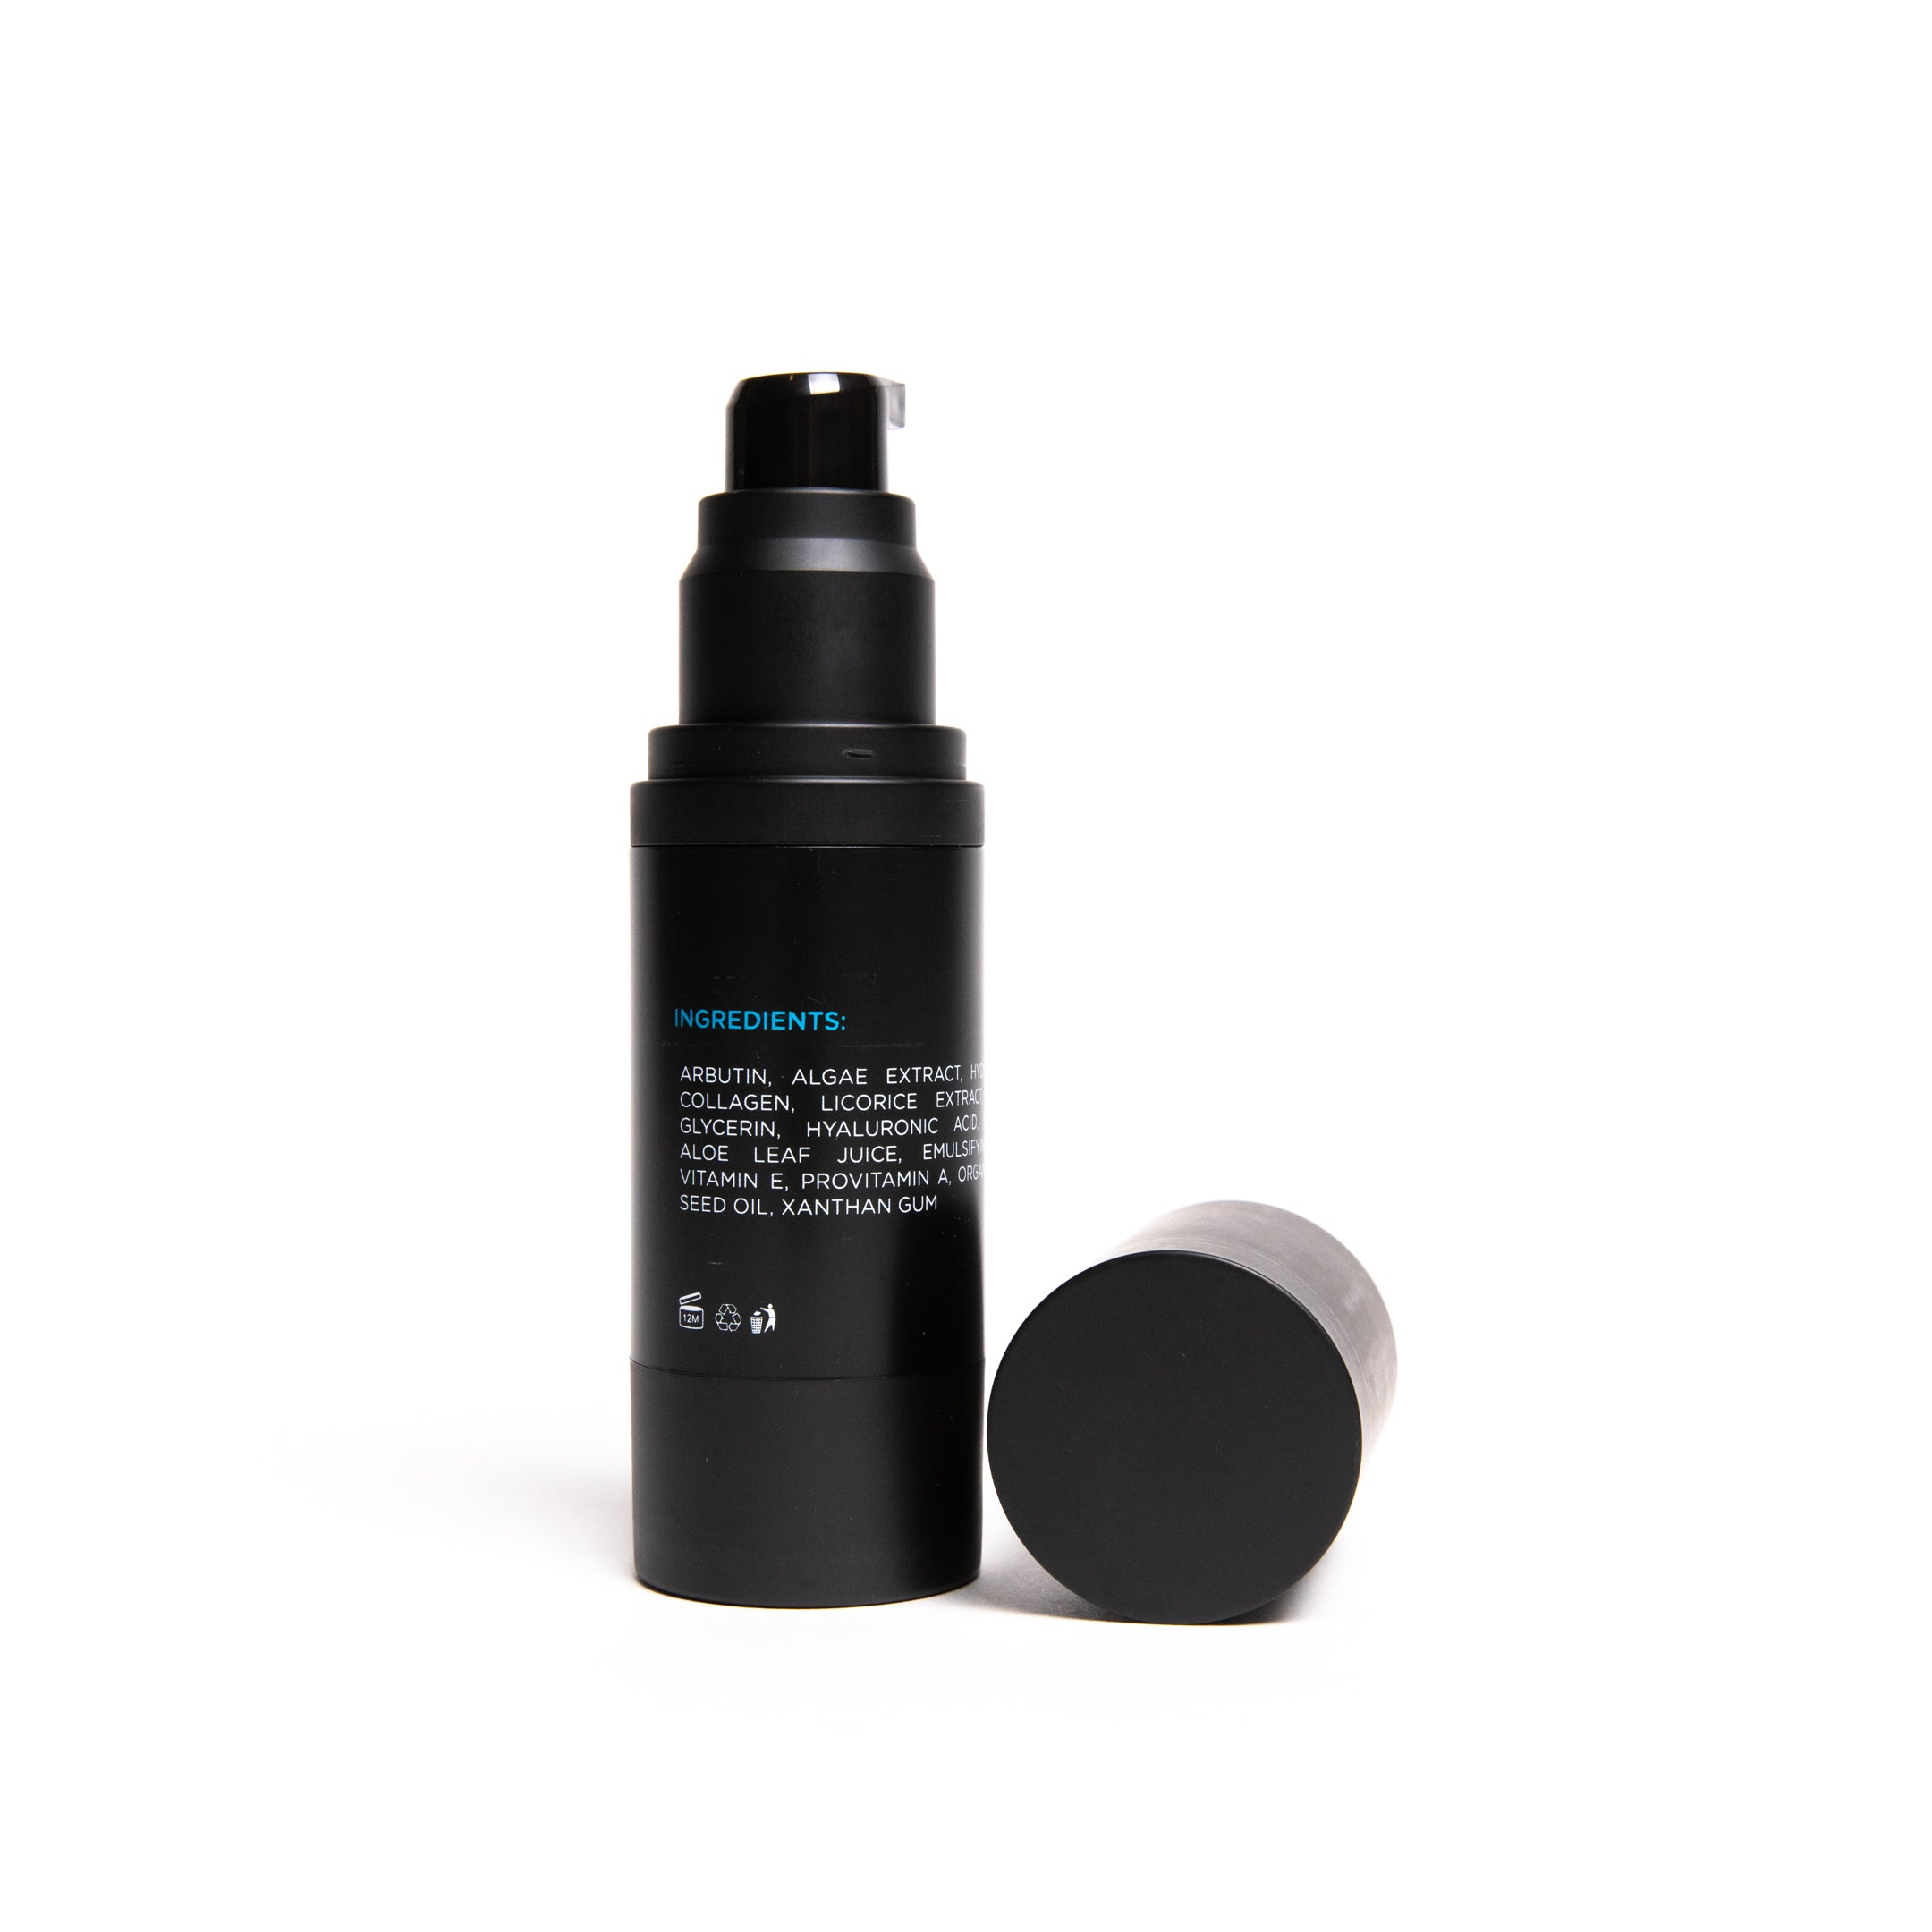 Bright Eye - Under Eye Cream for Men (1 fl oz/30ml)